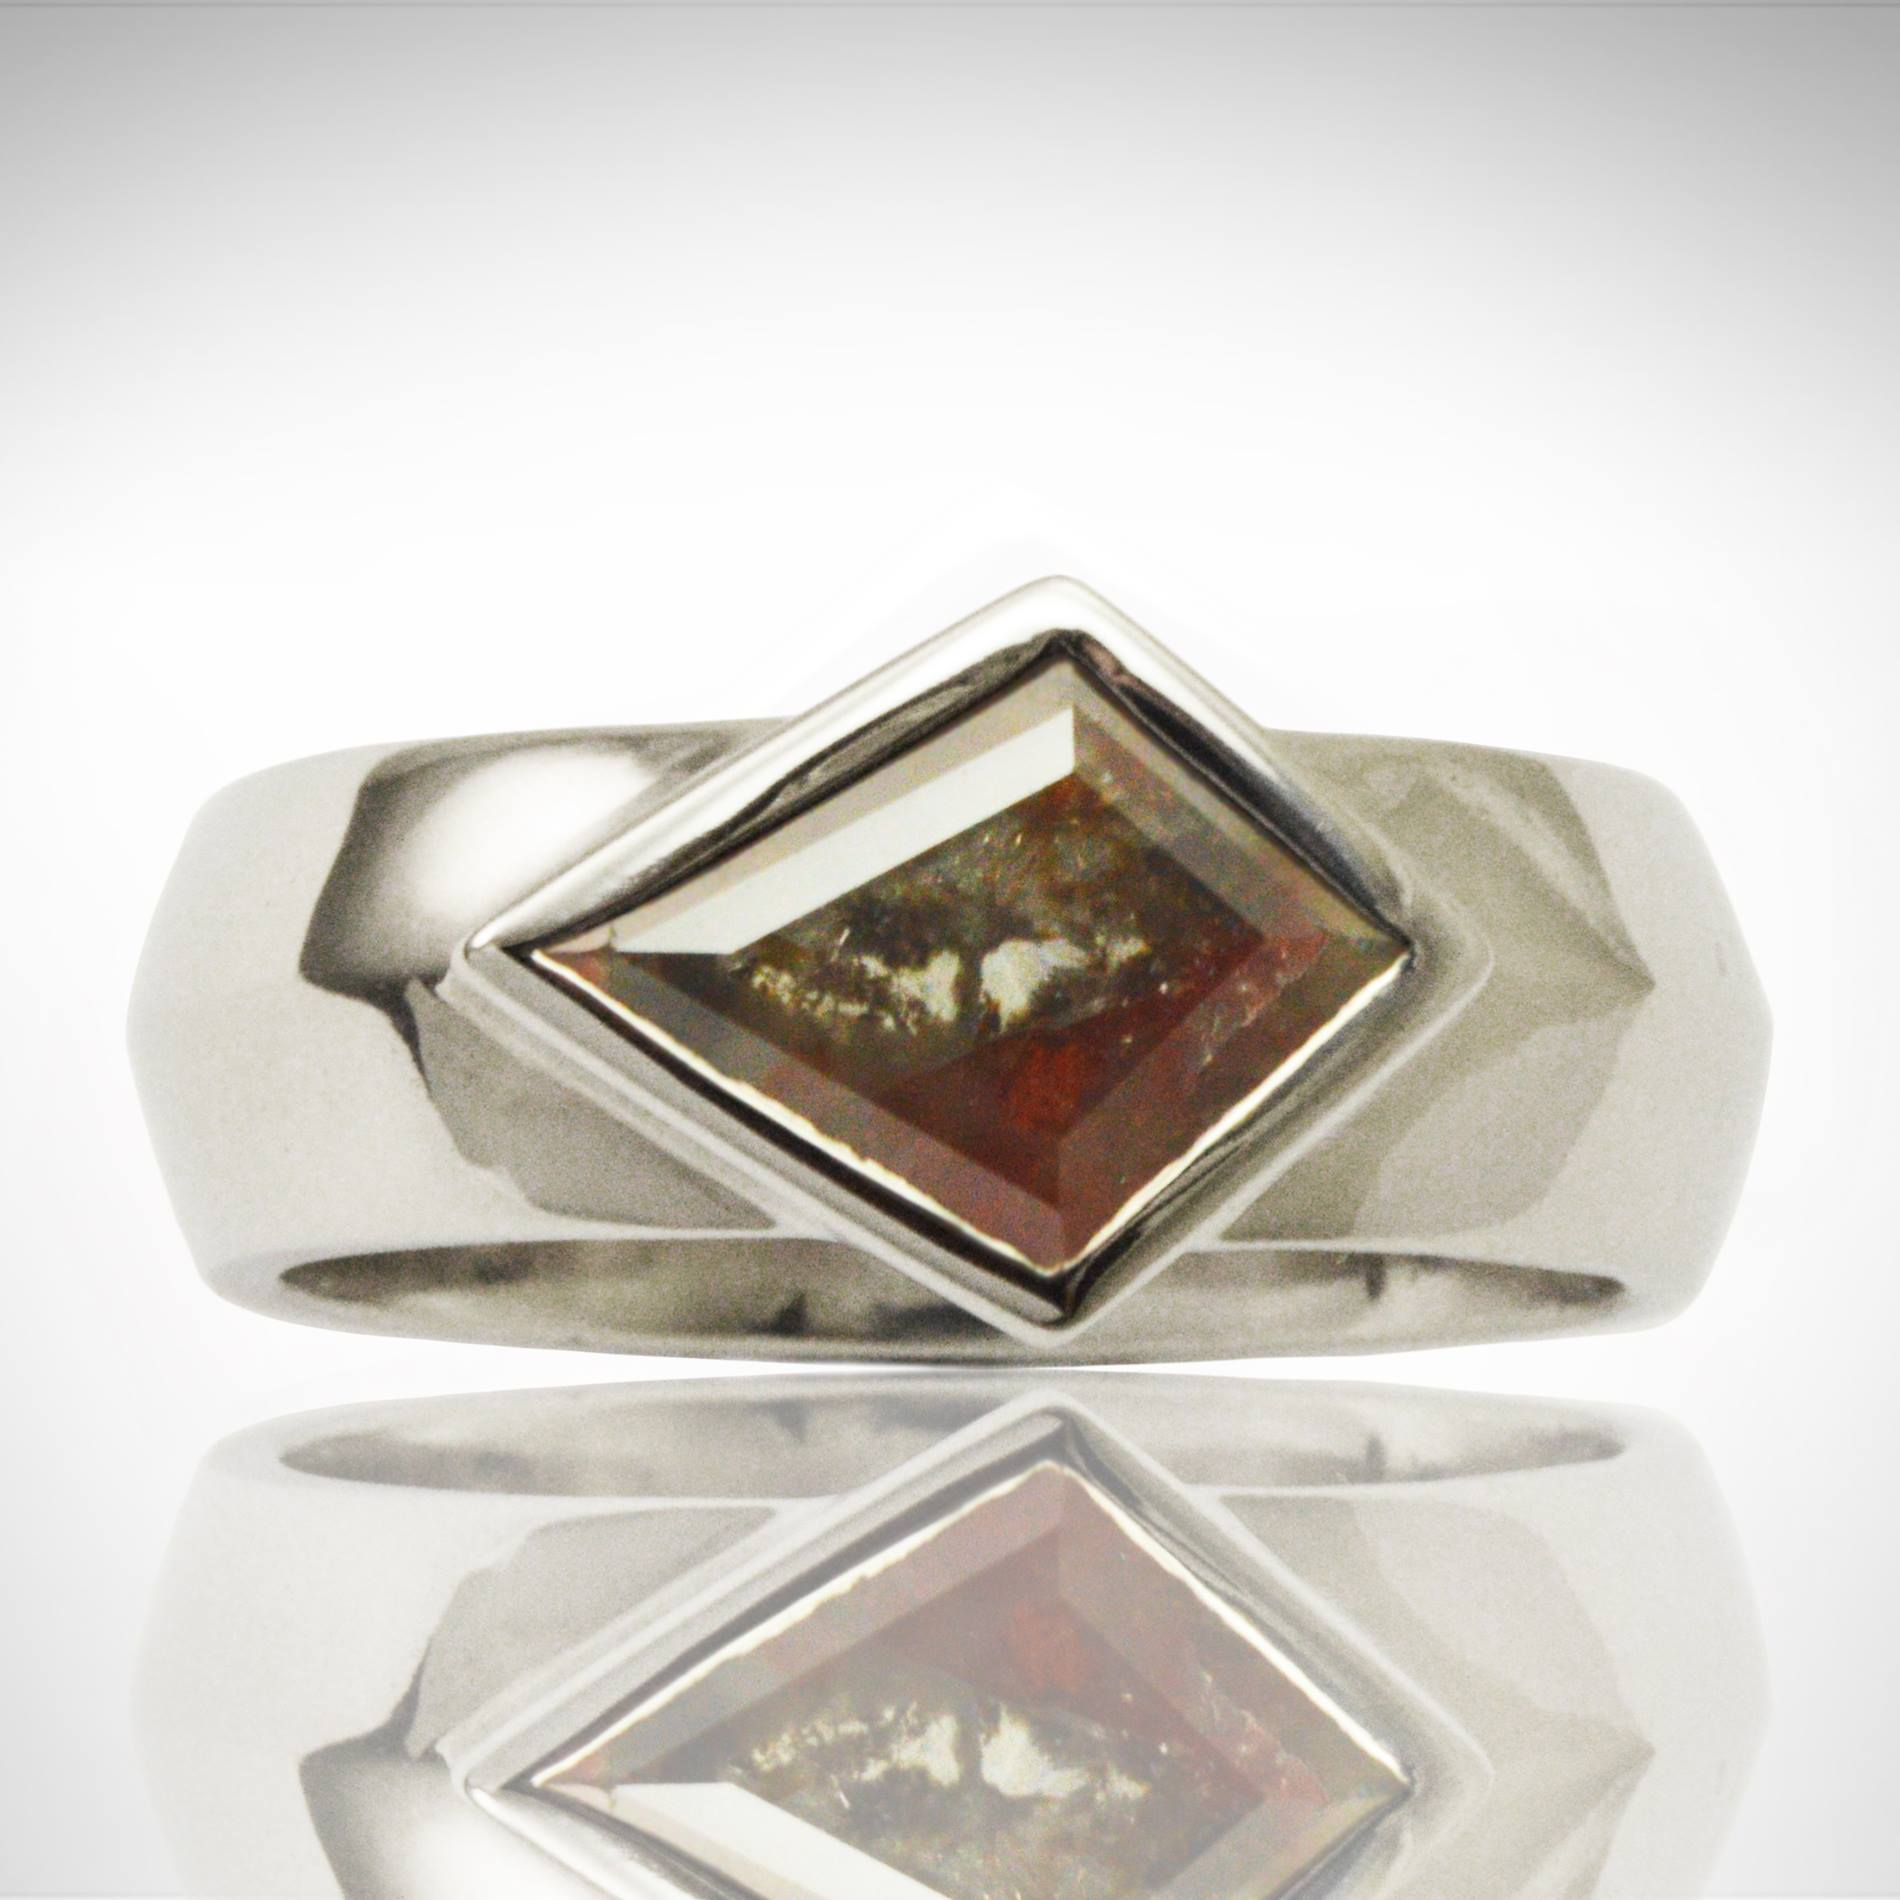 Men's palladium ring with kite-shaped diamond slice with black, brown and red inclusions